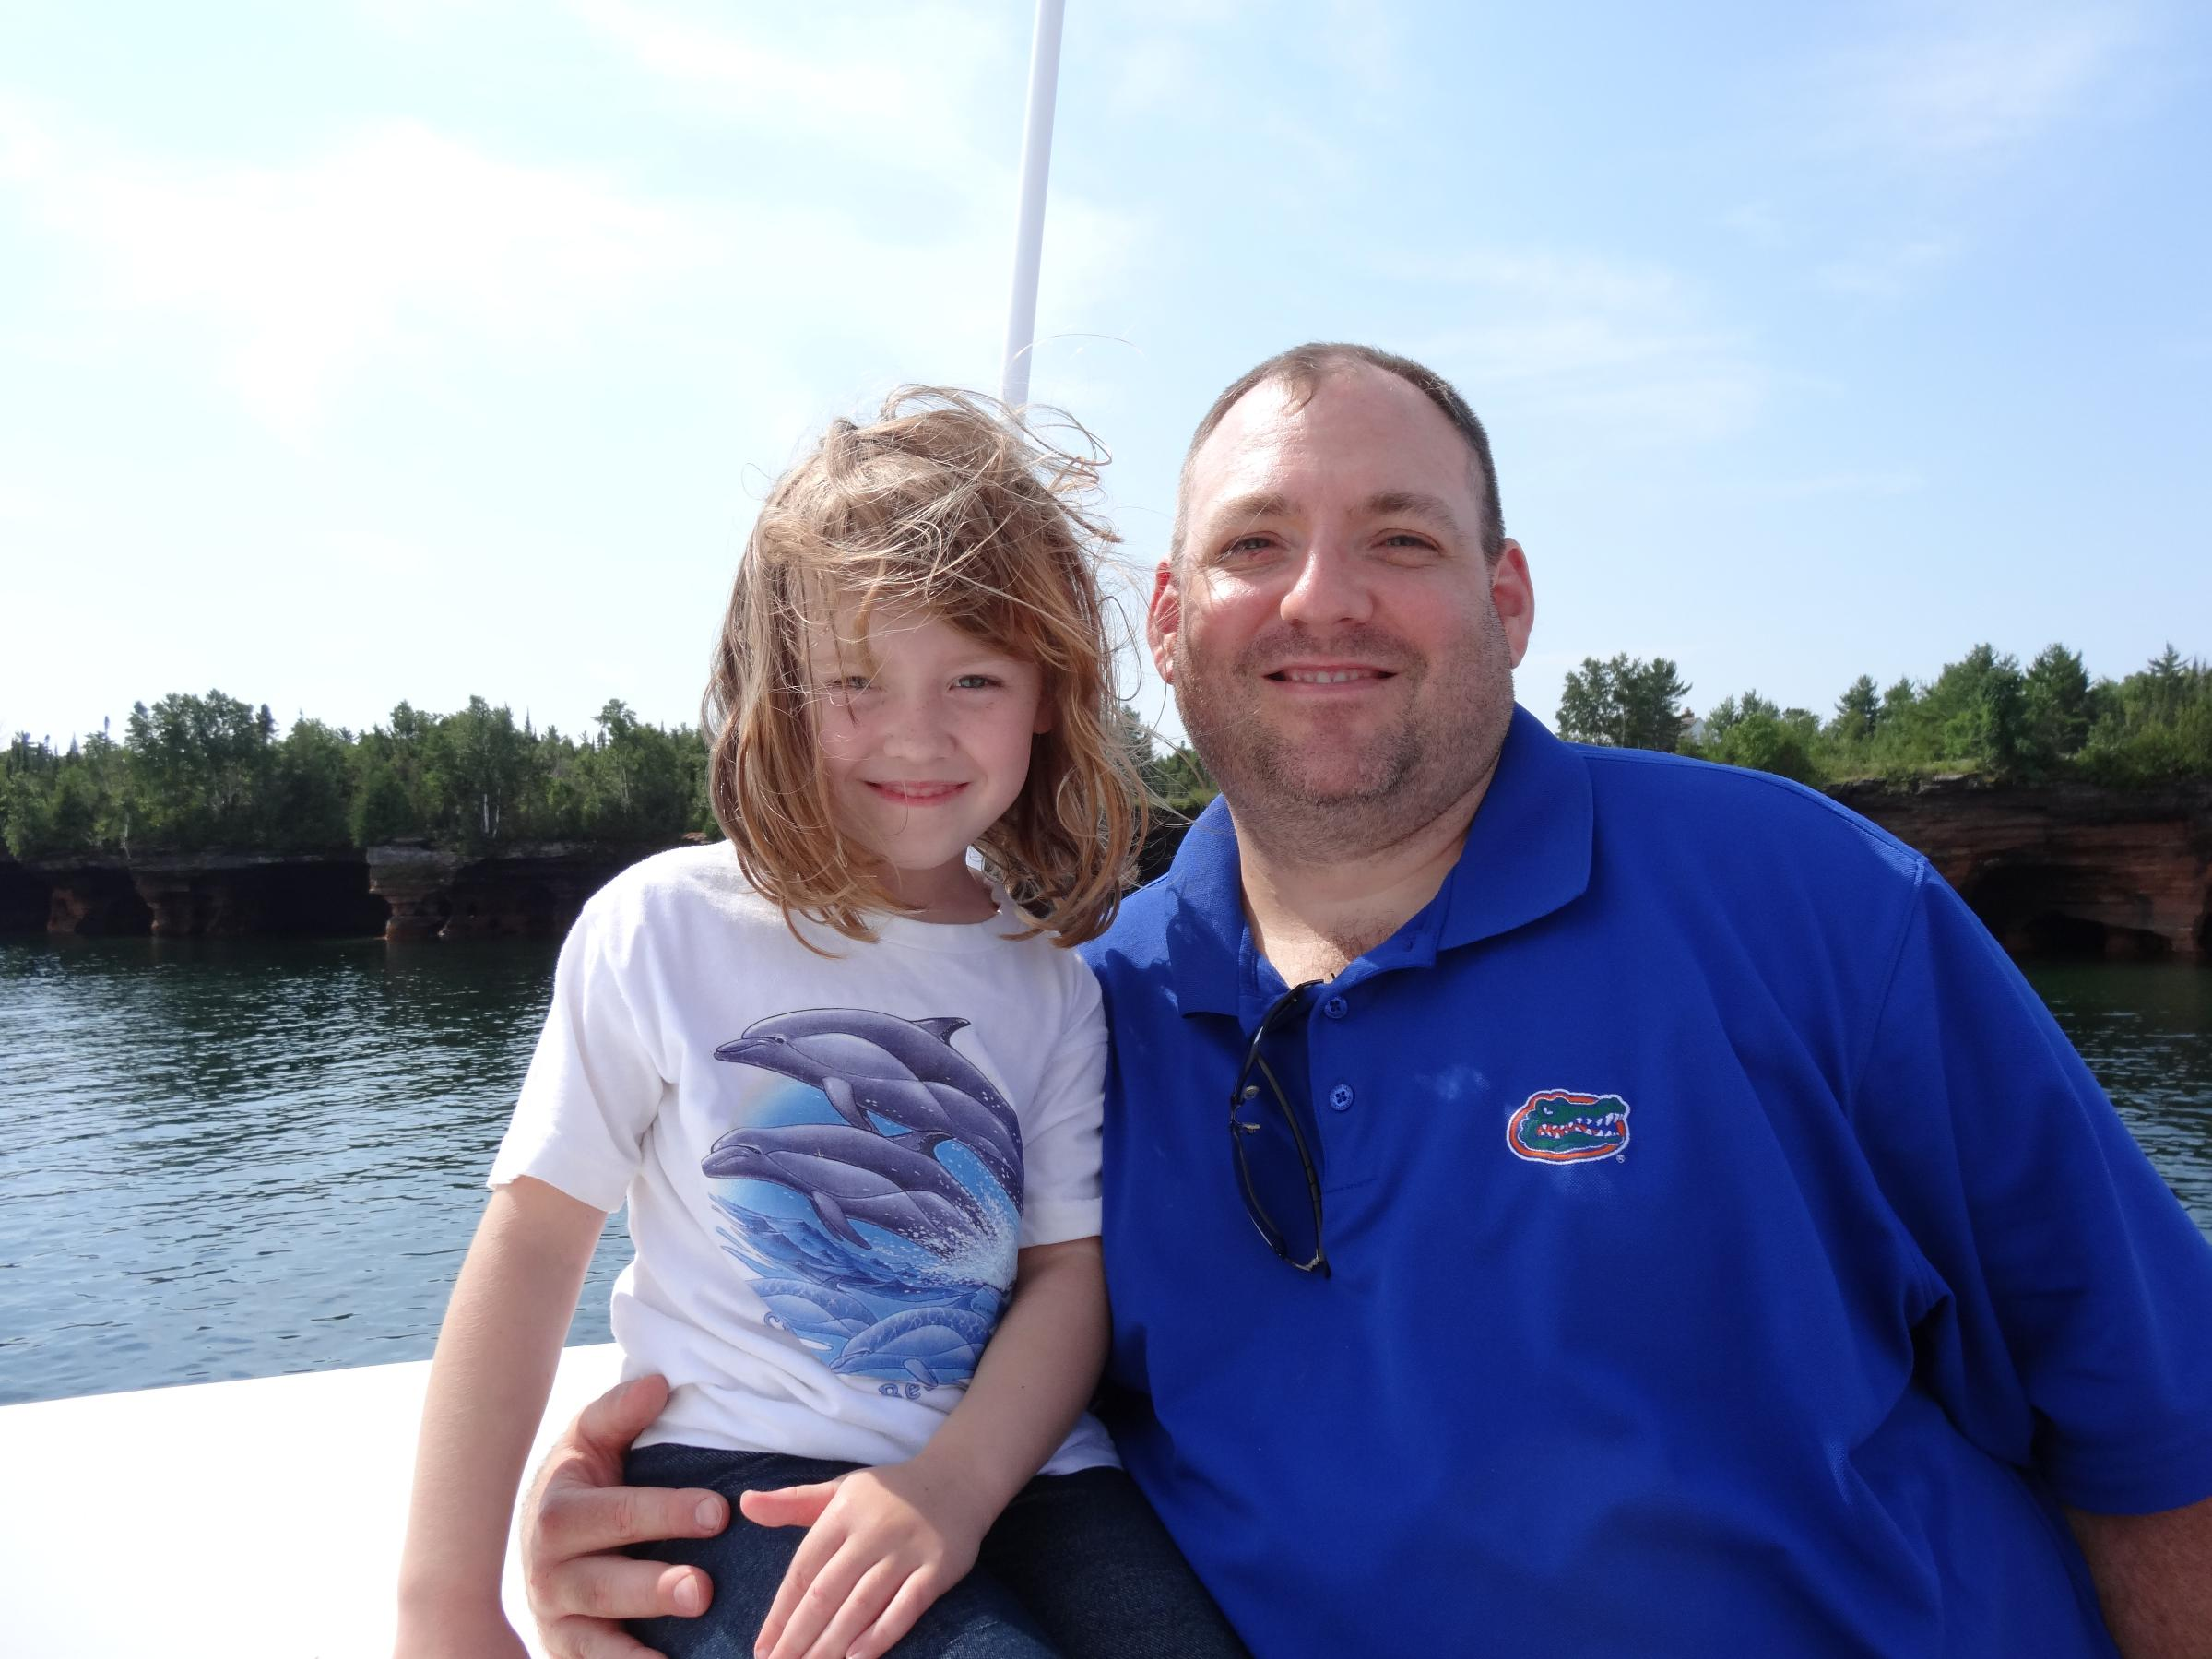 Apostle Islands boat tour